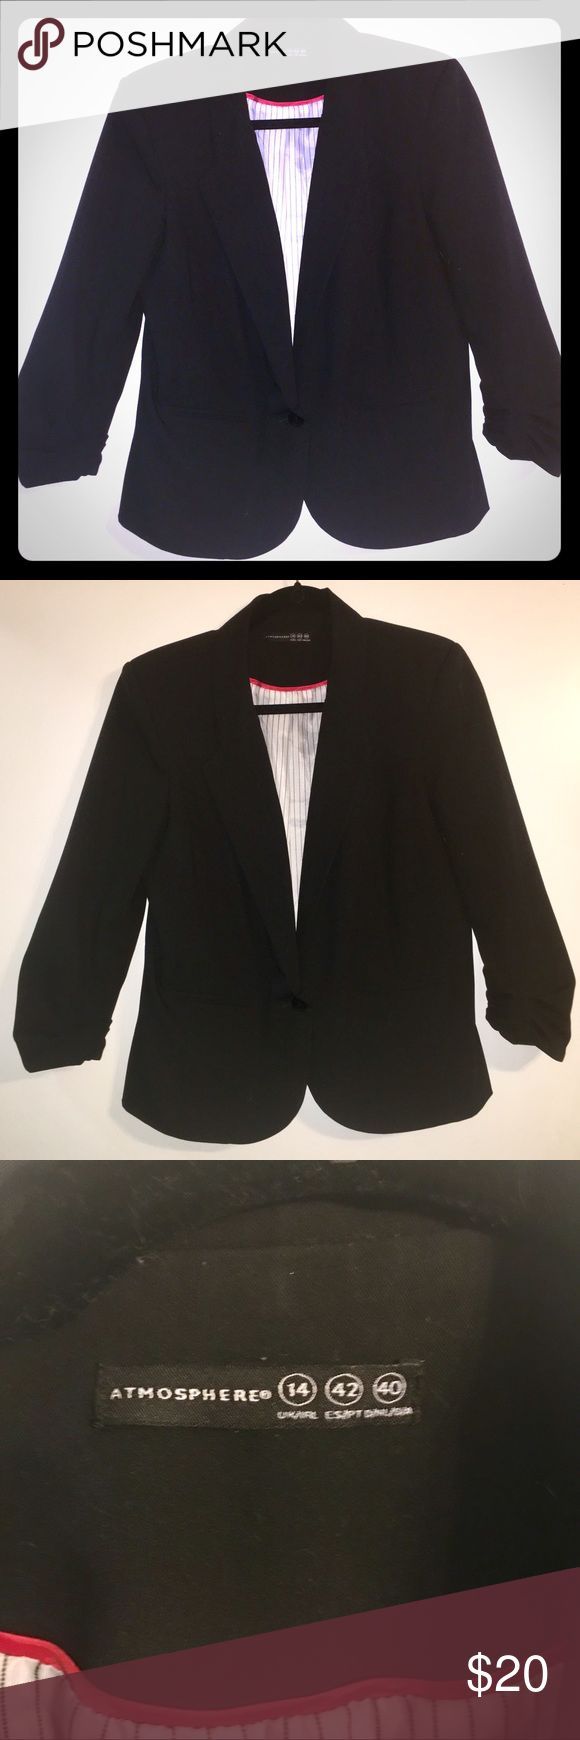 Atmosphere Black Blazer Black blazer from Atmosphere, purchased at Primark in the U.K. Has a nice casual, relaxed fit. Perfect for throwing over a t-shirt or dressing up a pair of jeans. Single button closure. Minimal signs of wear, in great condition! Machine washable. 3/4 length sleeves with elastic. Very comfortable! Is a U.K. size 14 which is a U.S. 10 Atmosphere Jackets & Coats Blazers